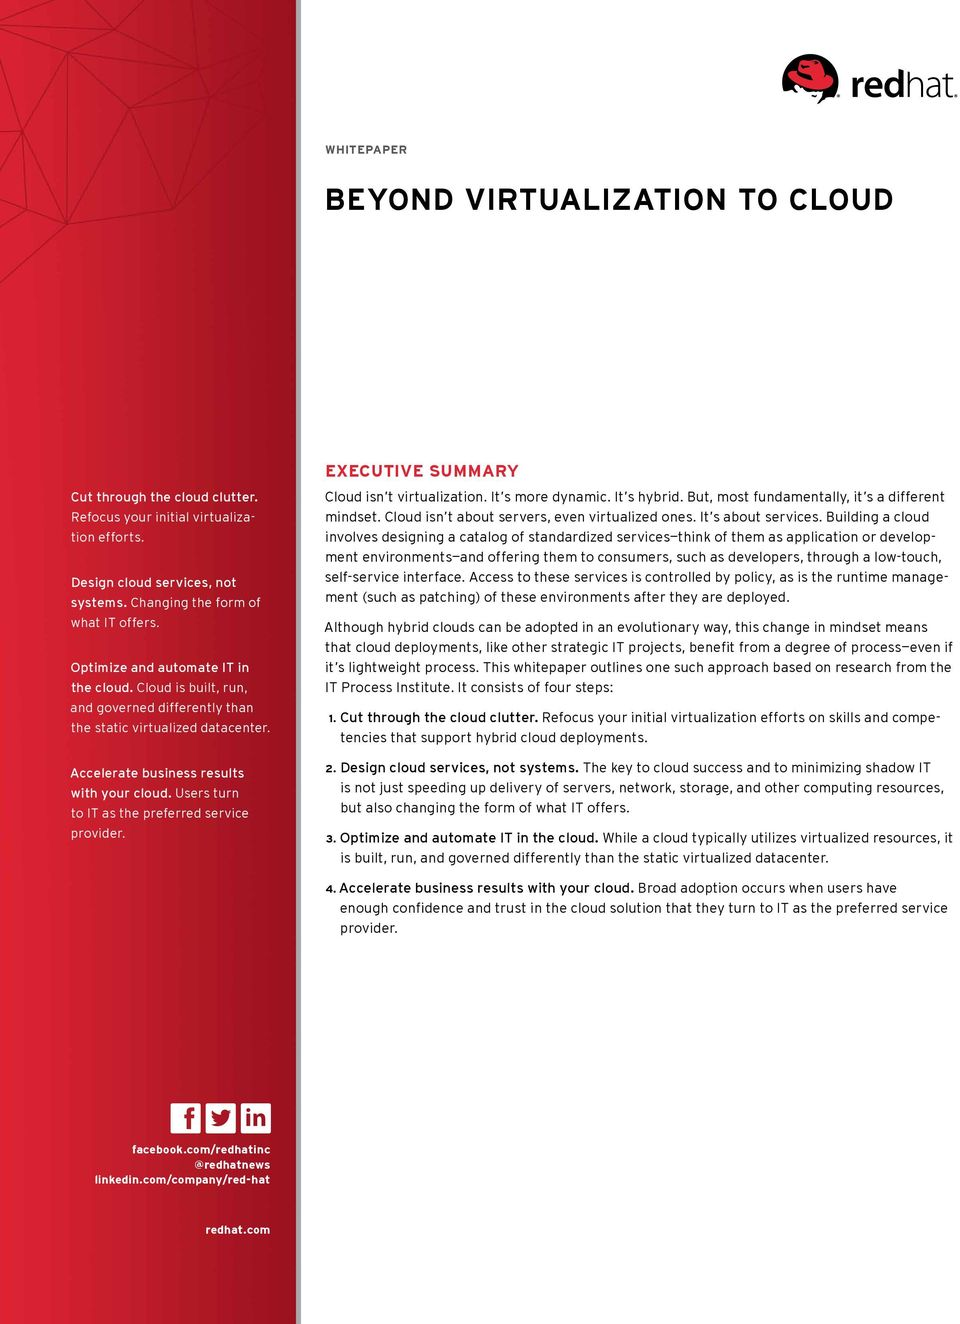 Accelerate business results with your cloud. Users turn to IT as the preferred service provider. Cloud isn t virtualization. It s more dynamic. It s hybr id.